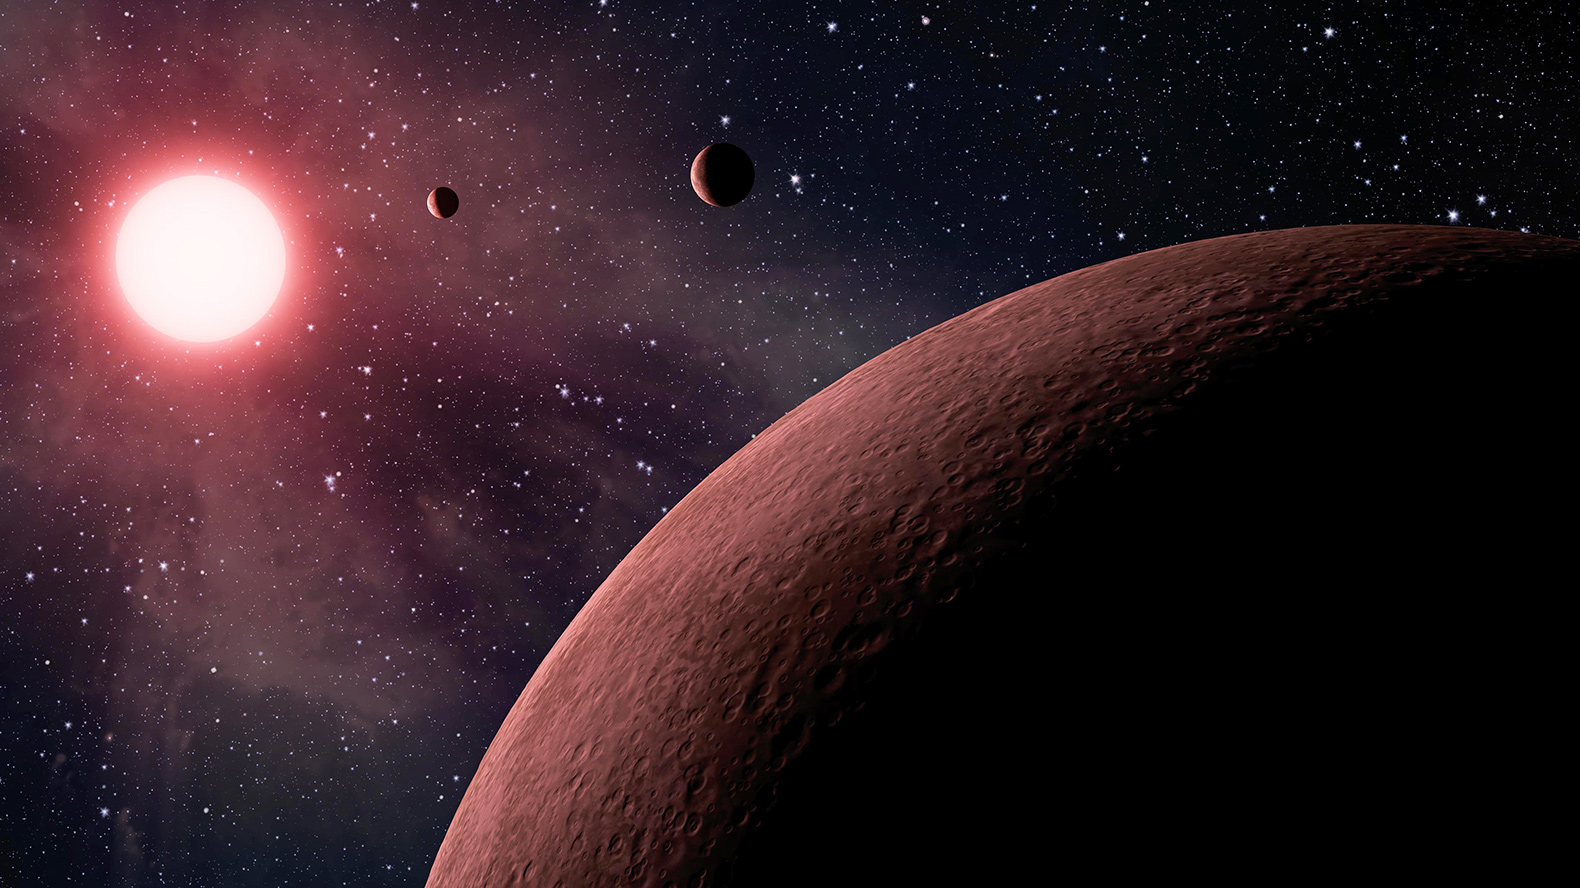 NASA identifies 219 new planet candidates - and 10 potential 'Earths'